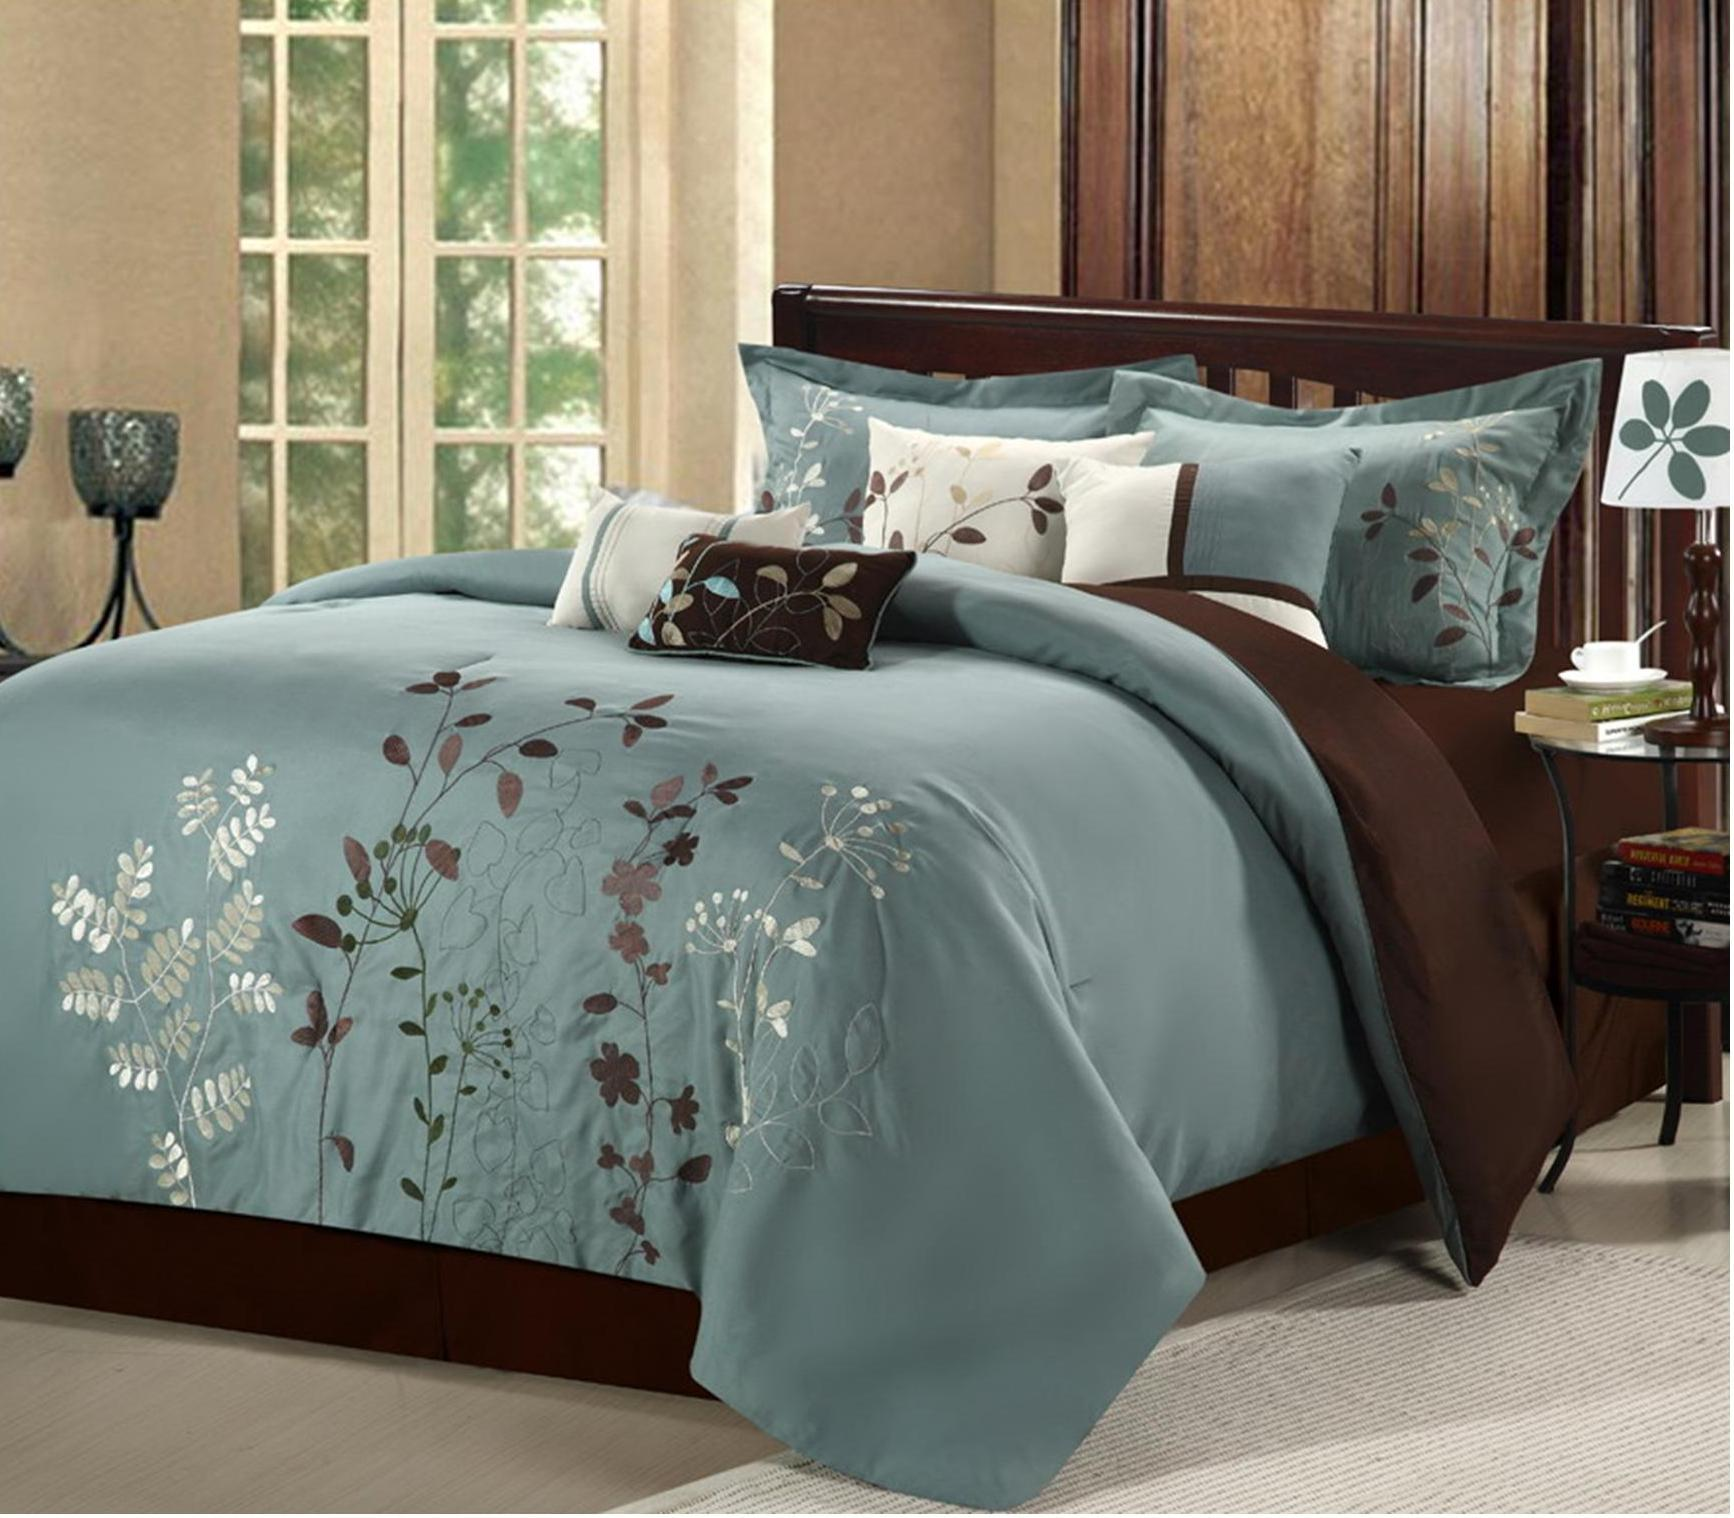 Chic Home Bliss Garden 12-Piece Bed-in-a-Bag Embroidered Comforter Set, Sage King